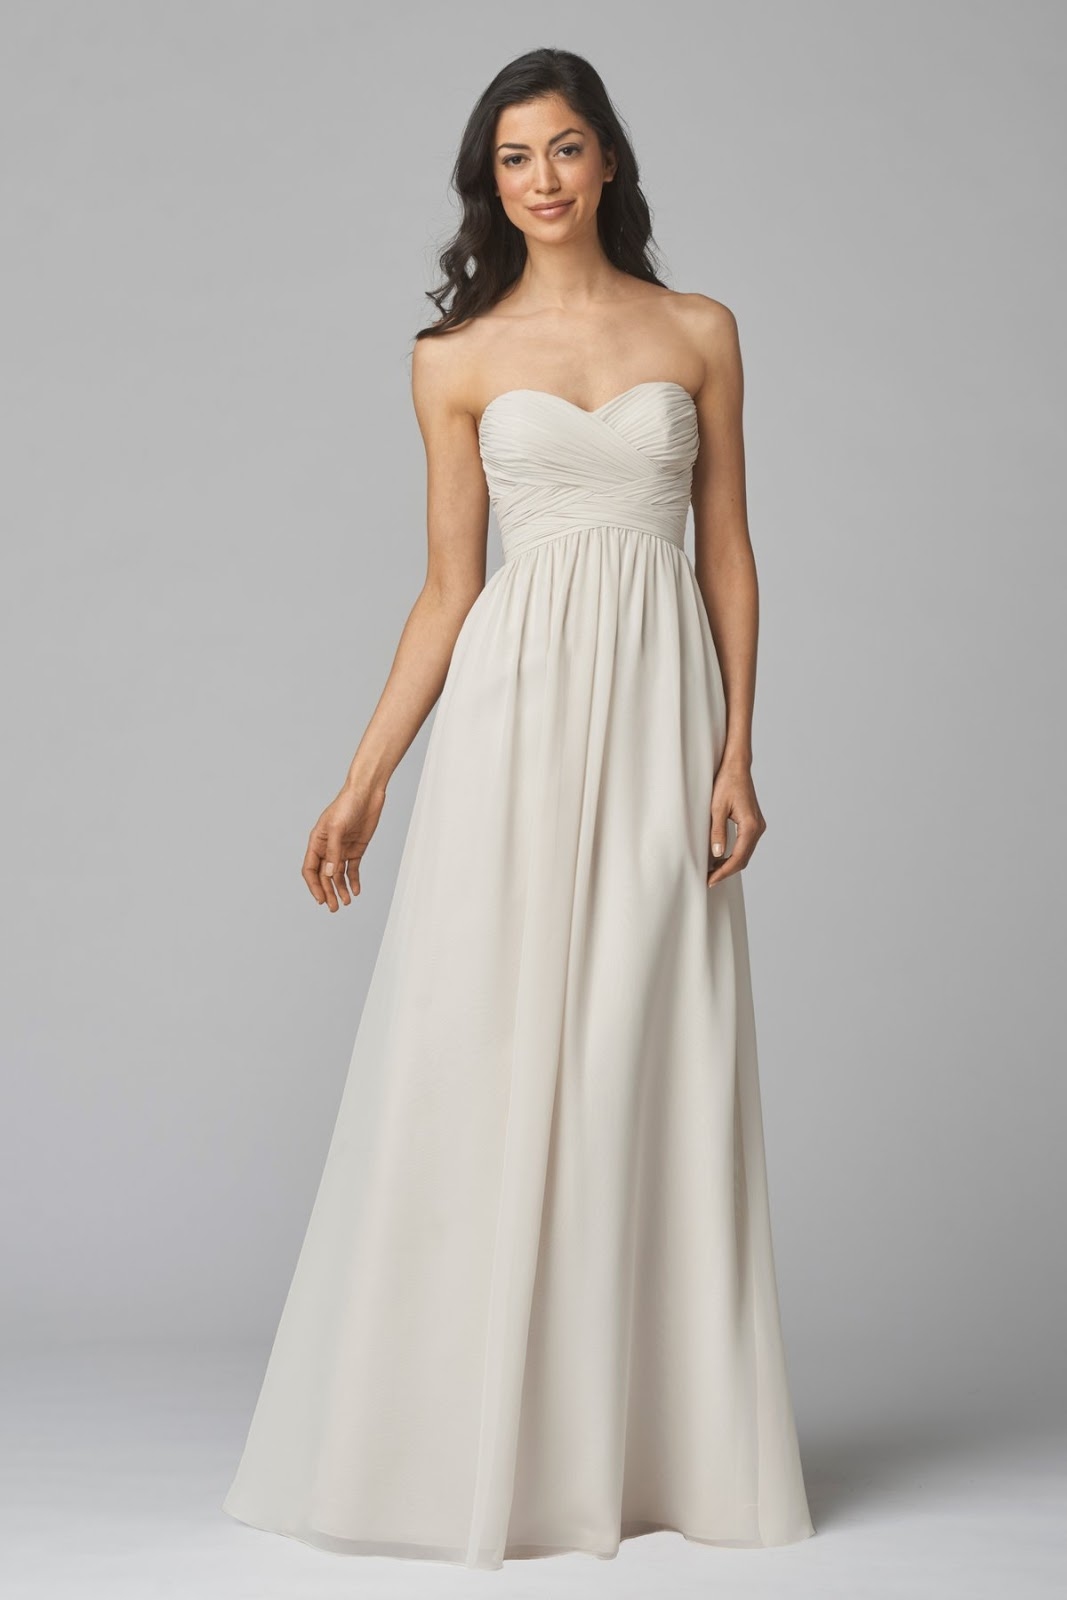 Miss ruby boutique bridesmaid dress of the week wtoo 904 bridesmaid dresses are arriving daily for the fall 2015 collection and this wtoo gown is one of our newest arrivals its easy to wear ombrellifo Images